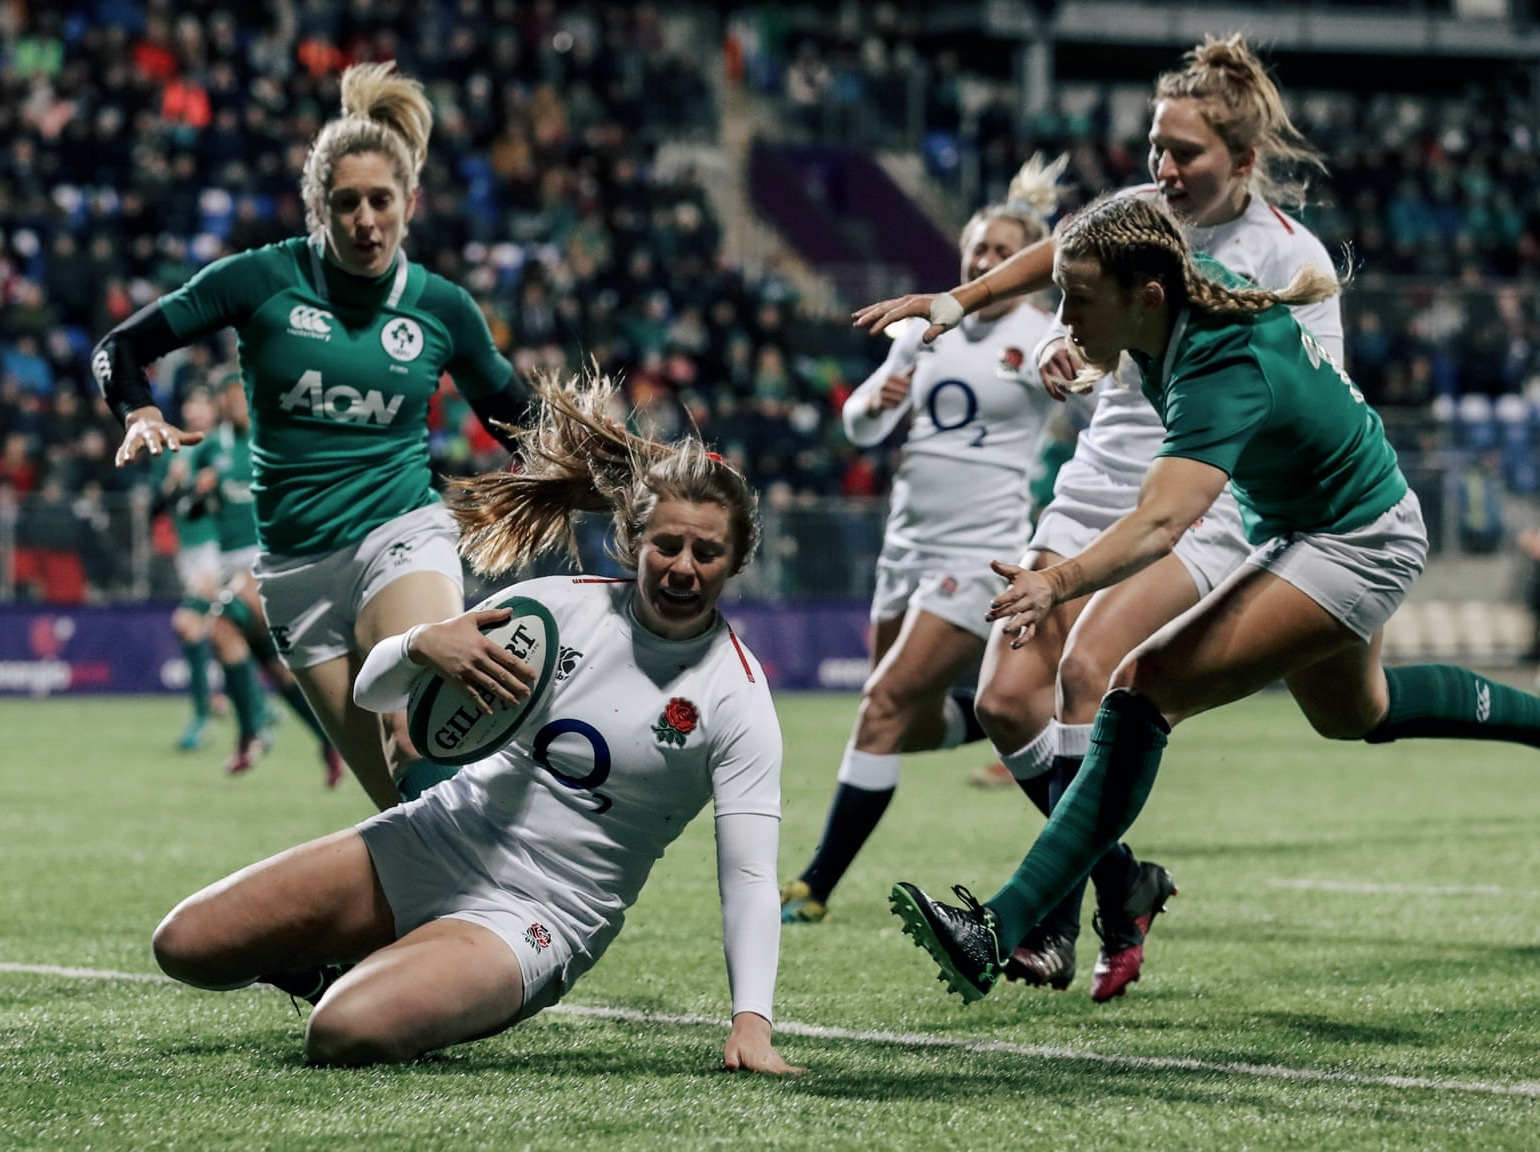 England's Zoe Harrison goes over for a try at Donnybrook in Dublin. Img: Dan Sheridan